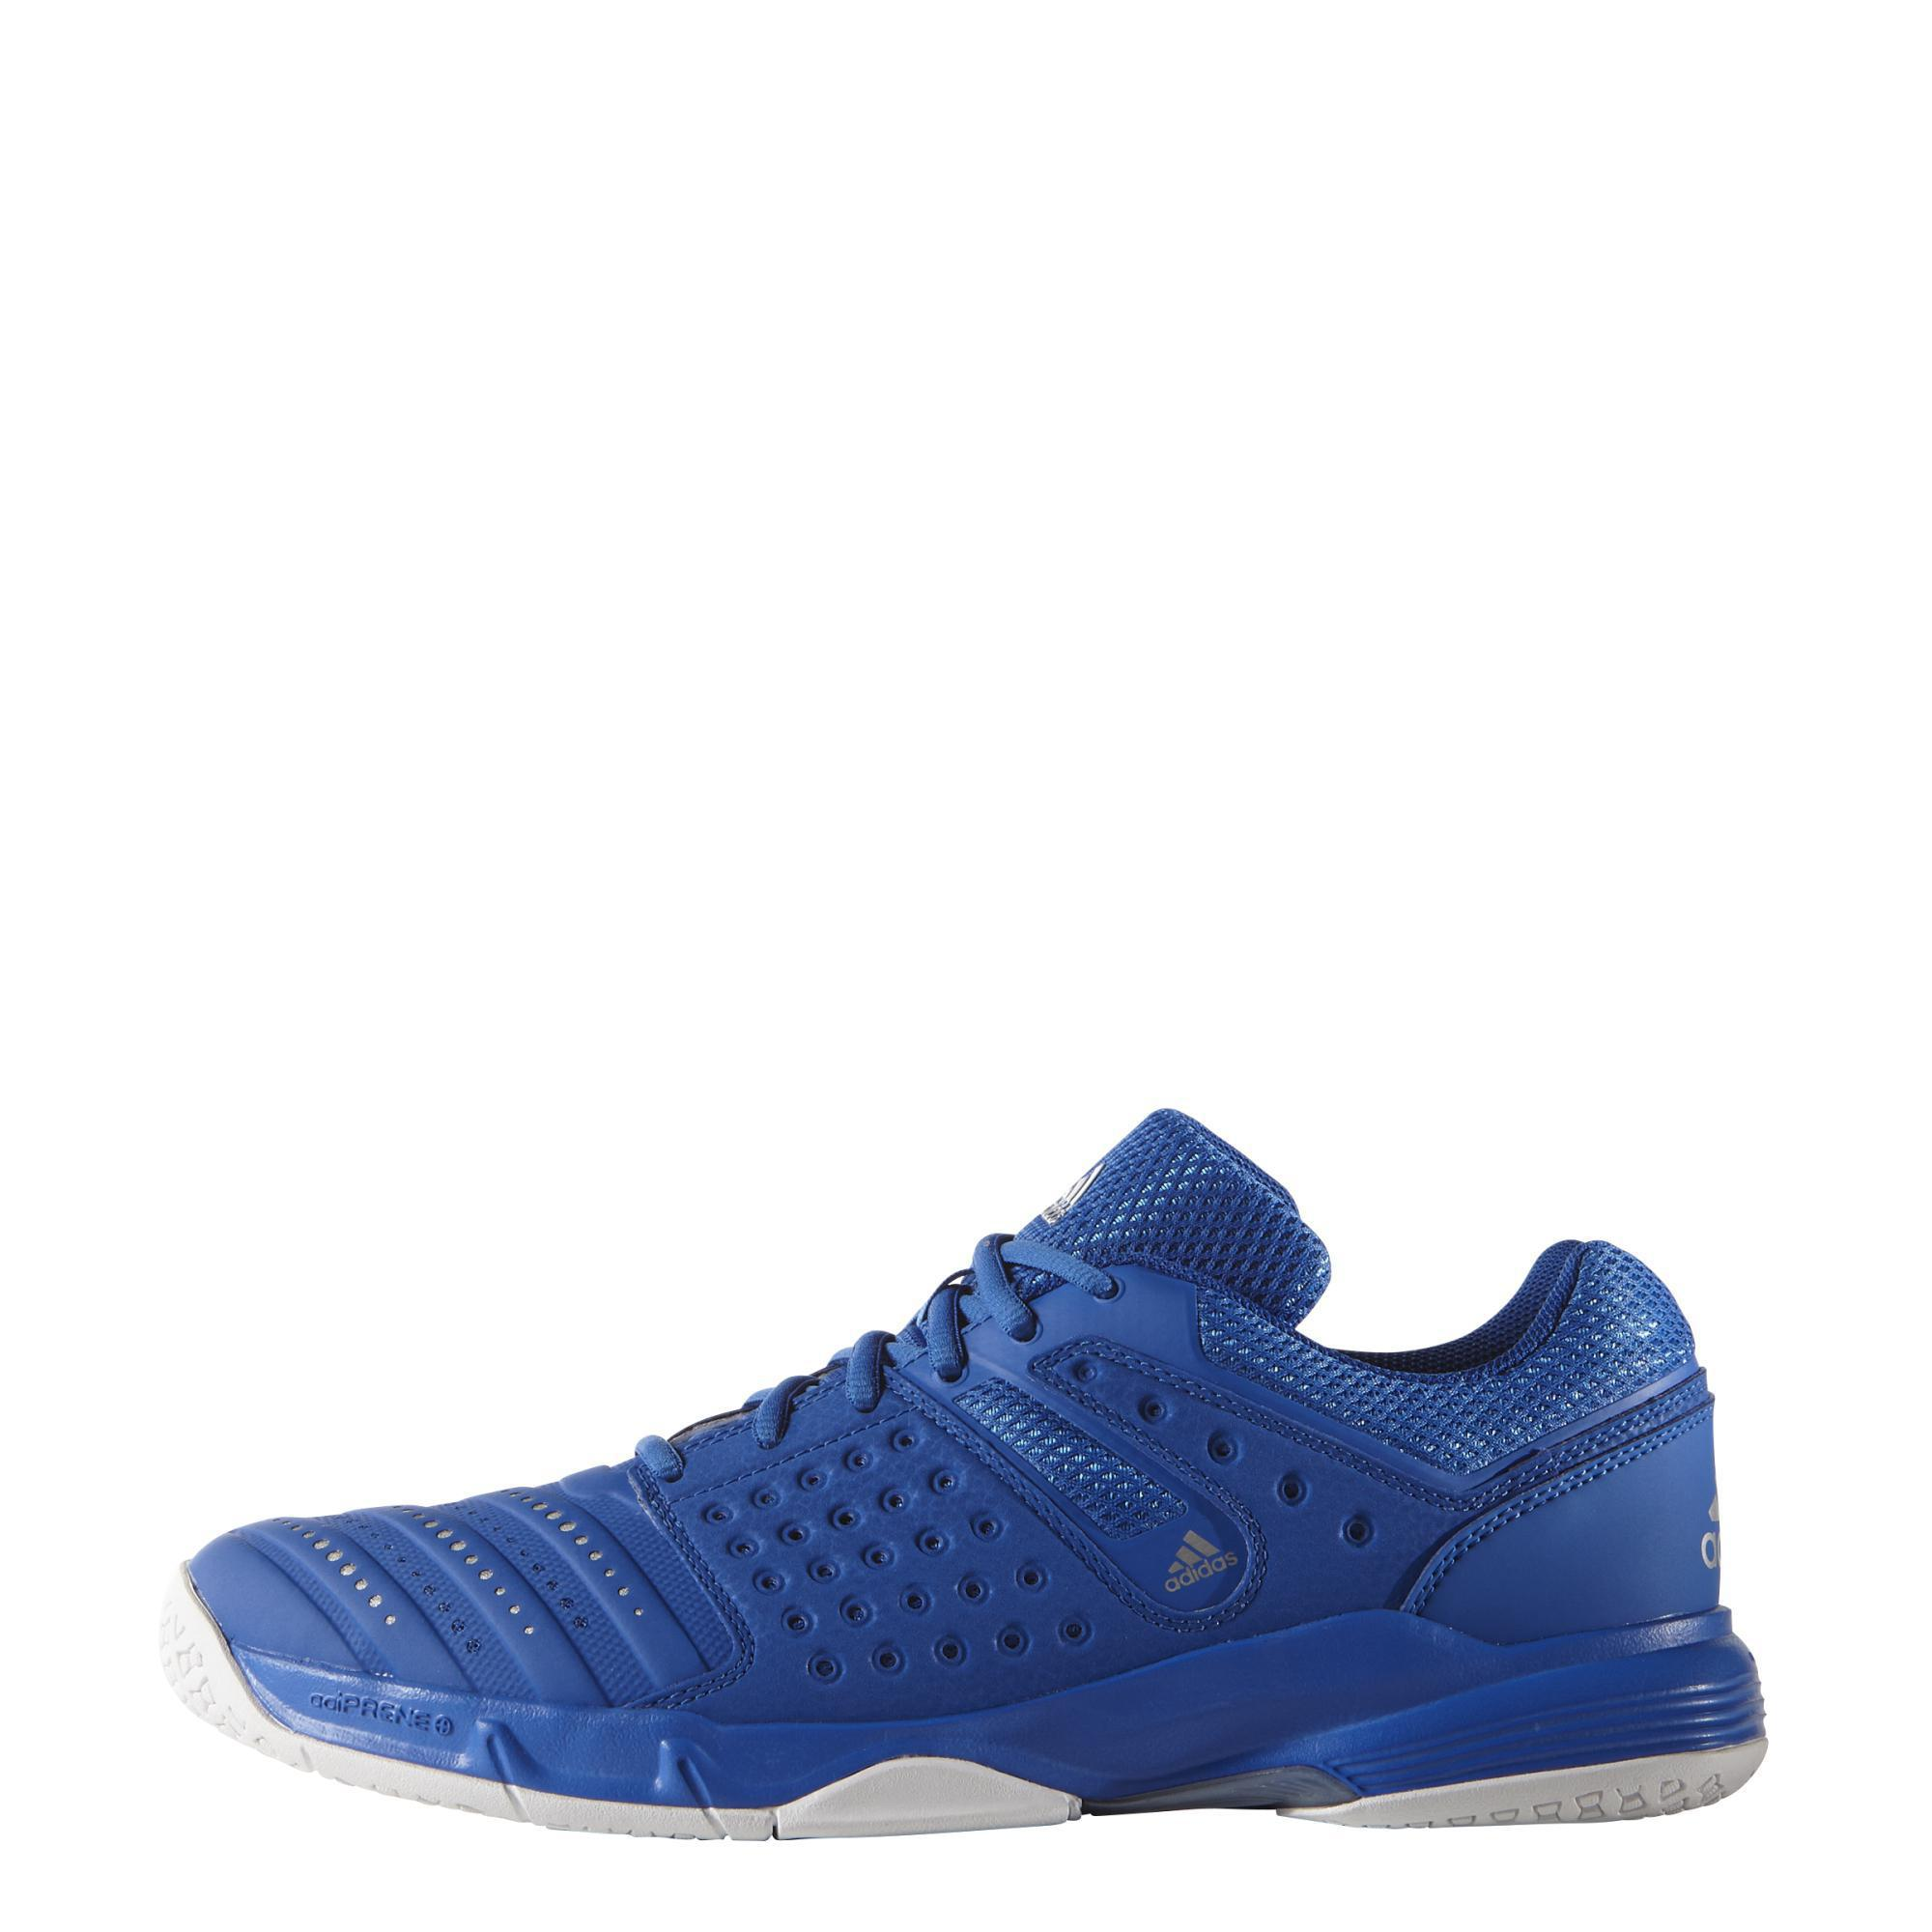 Adidas Stabil Squash Shoes Sale